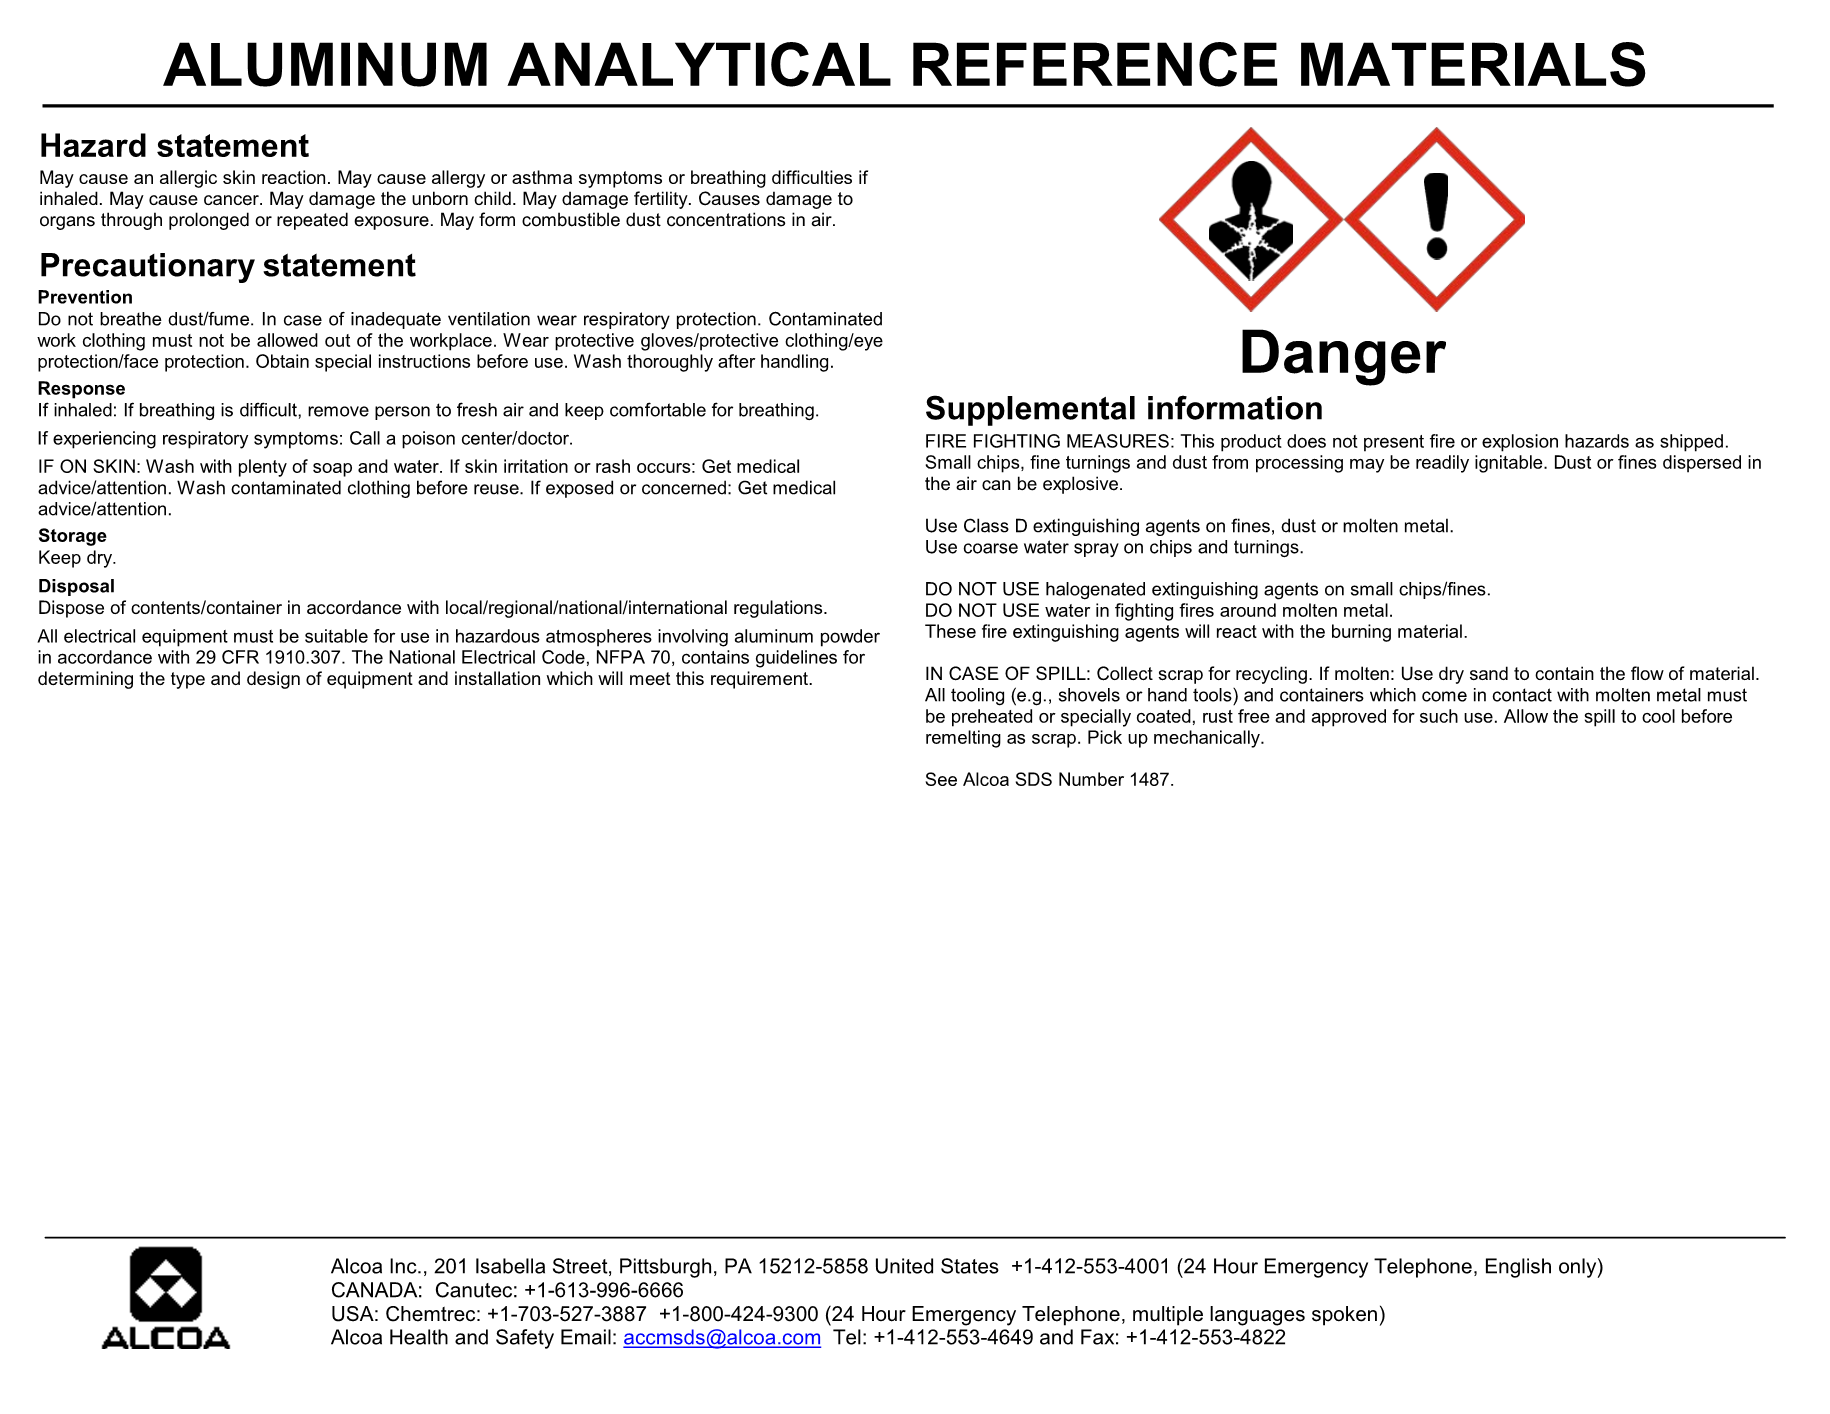 Index of /interactive-pdfs/alcoa-aluminum/html5/files/assets